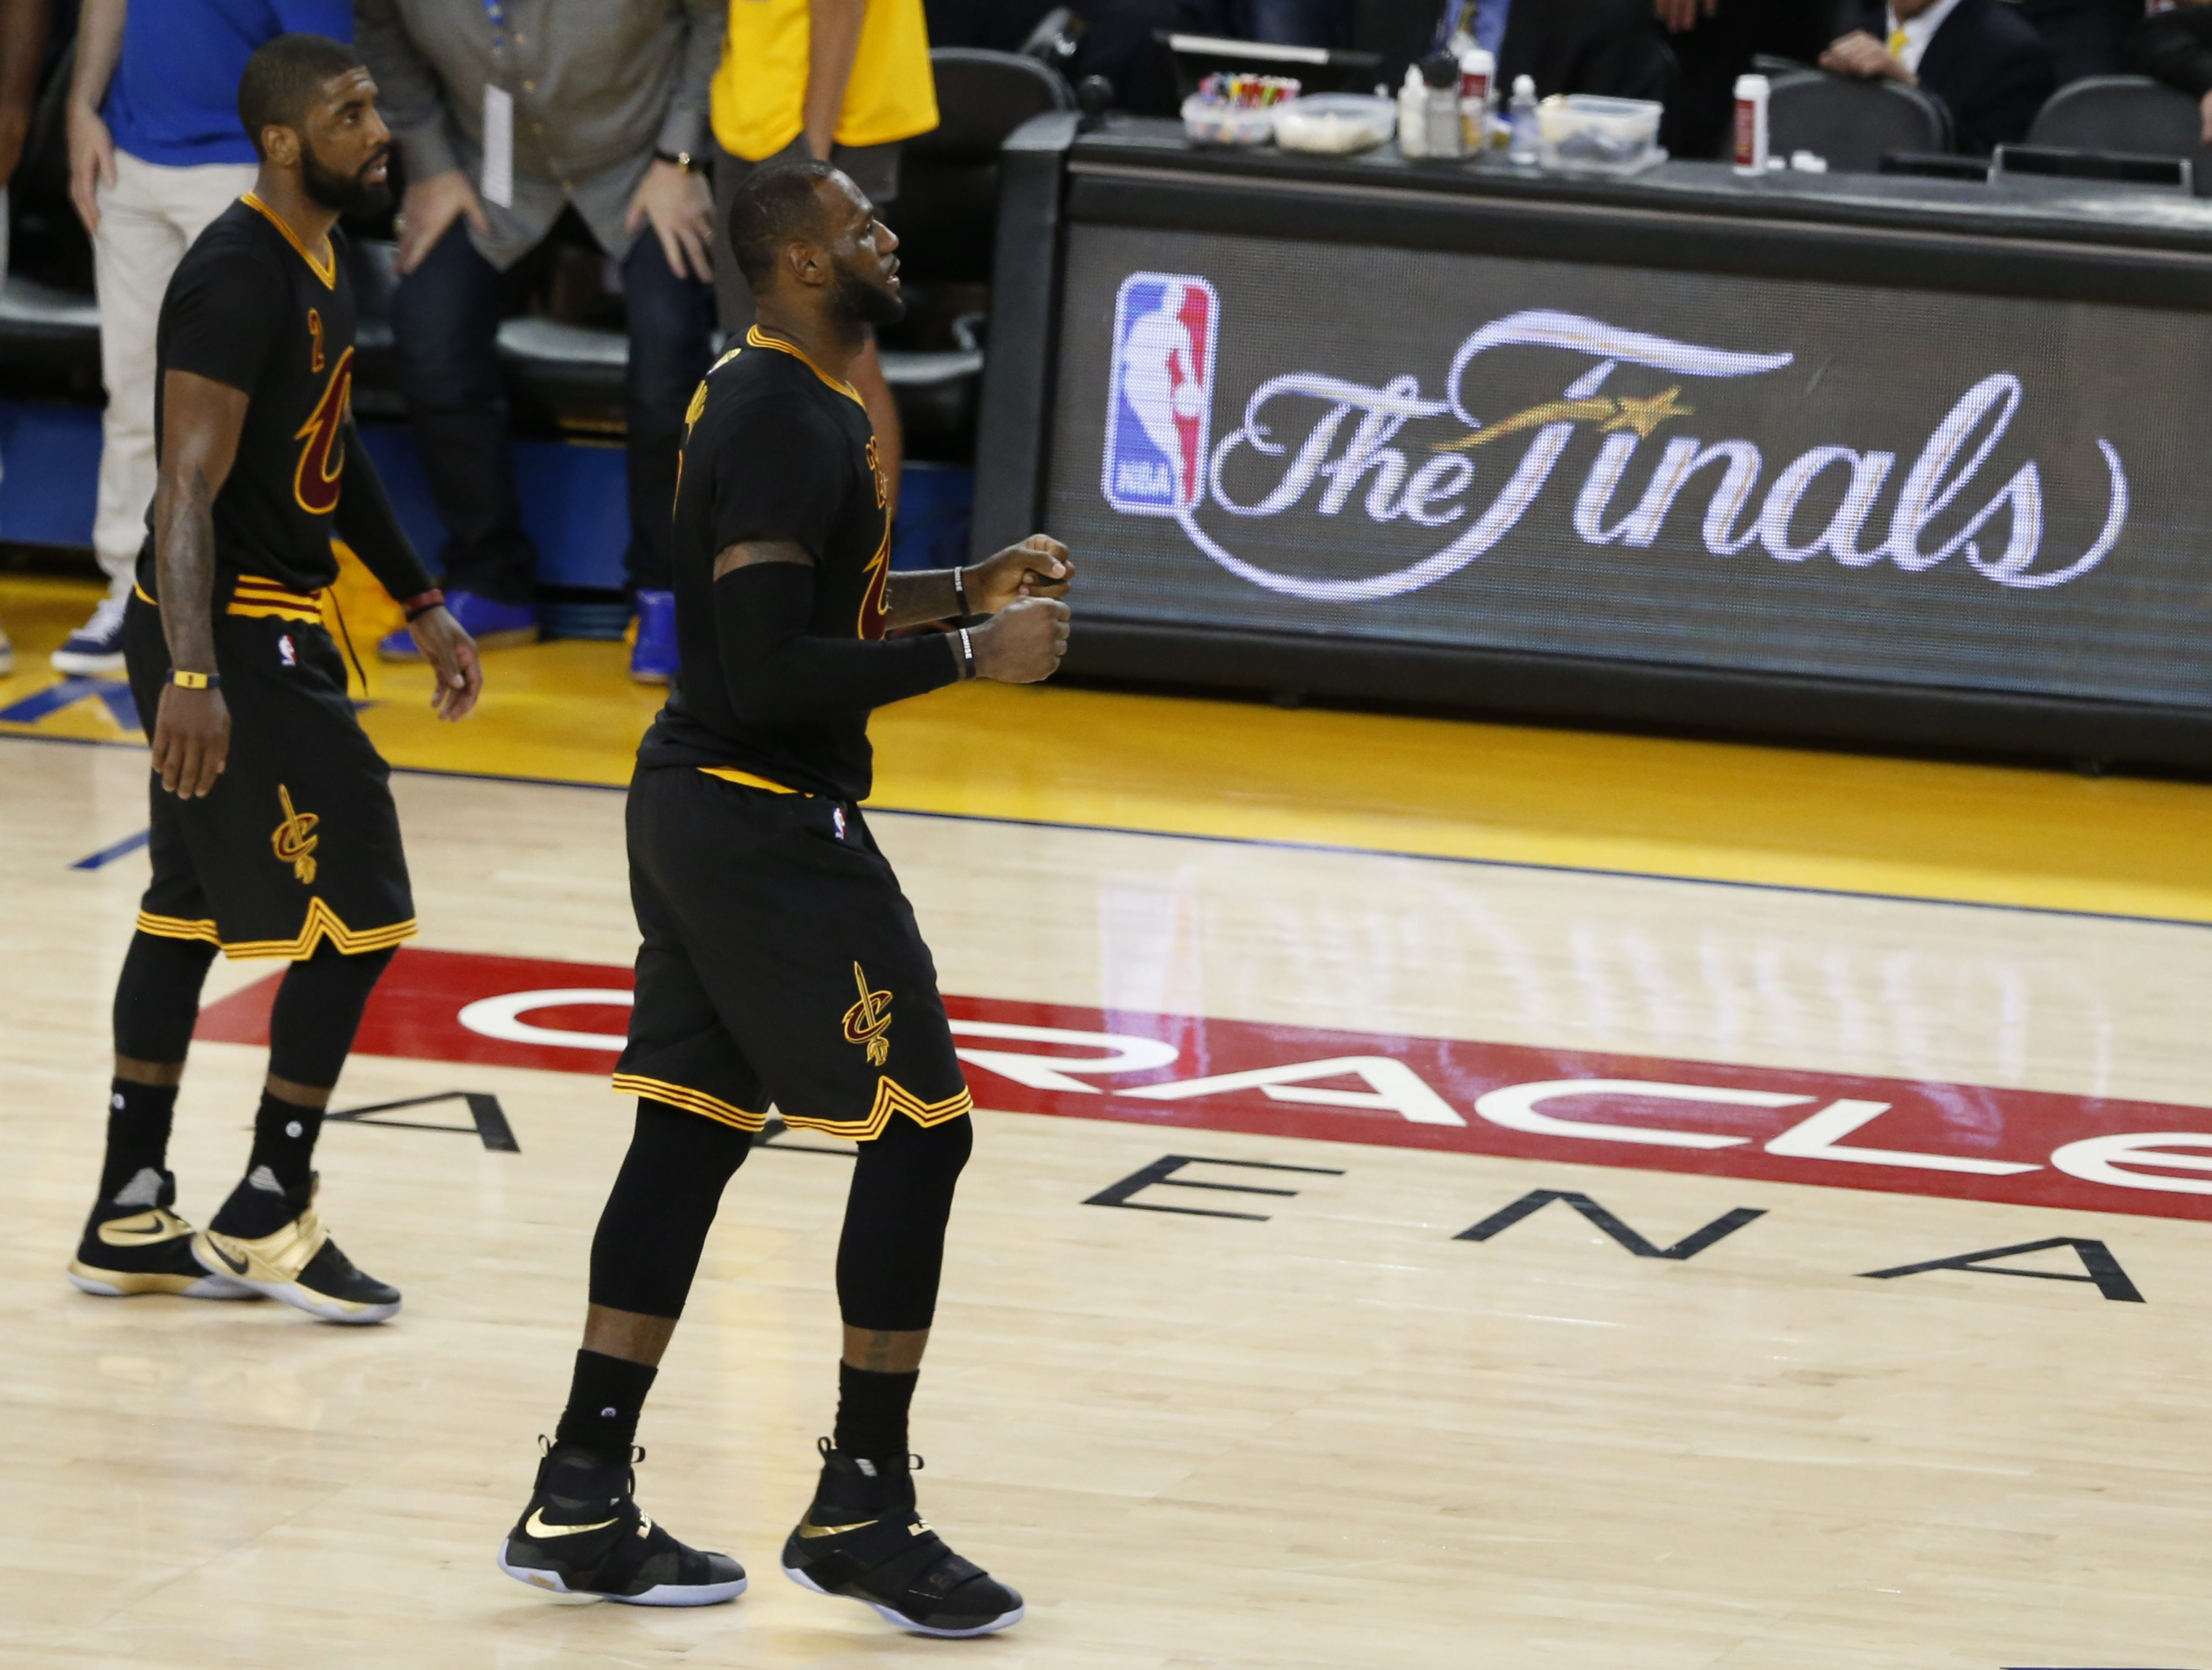 LWS192. Oakland (United States), 19/06/2016.- Cleveland Cavaliers player LeBron James and Kyrie Irving (L) walk across the court in a timeout against the Golden State Warriors in the second half of their NBA Finals game seven at Oracle Arena in Oakland, California, USA, 19 June 2016. (Baloncesto, Estados Unidos) EFE/EPA/JOHN G. MABANGLO CORBIS OUT